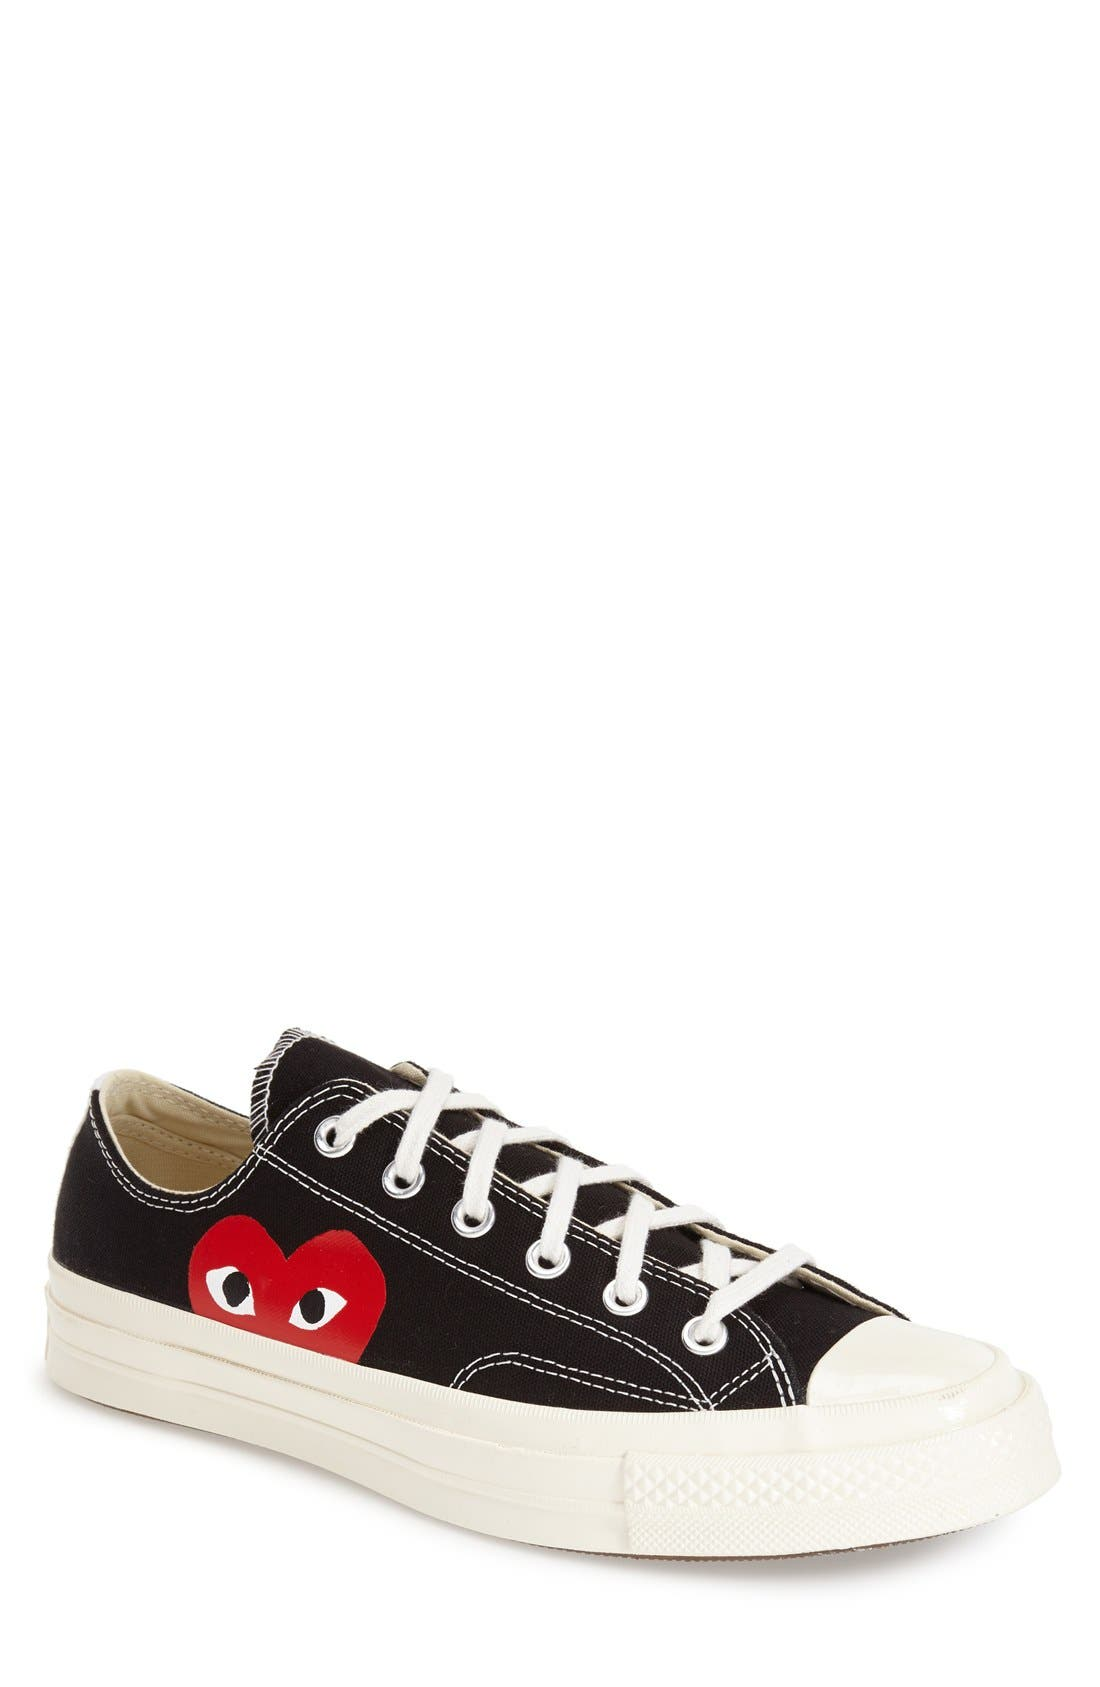 COMME DES GARÇONS PLAY x Converse Chuck Taylor<sup>®</sup> Low Top Sneaker, Main, color, BLACK CANVAS